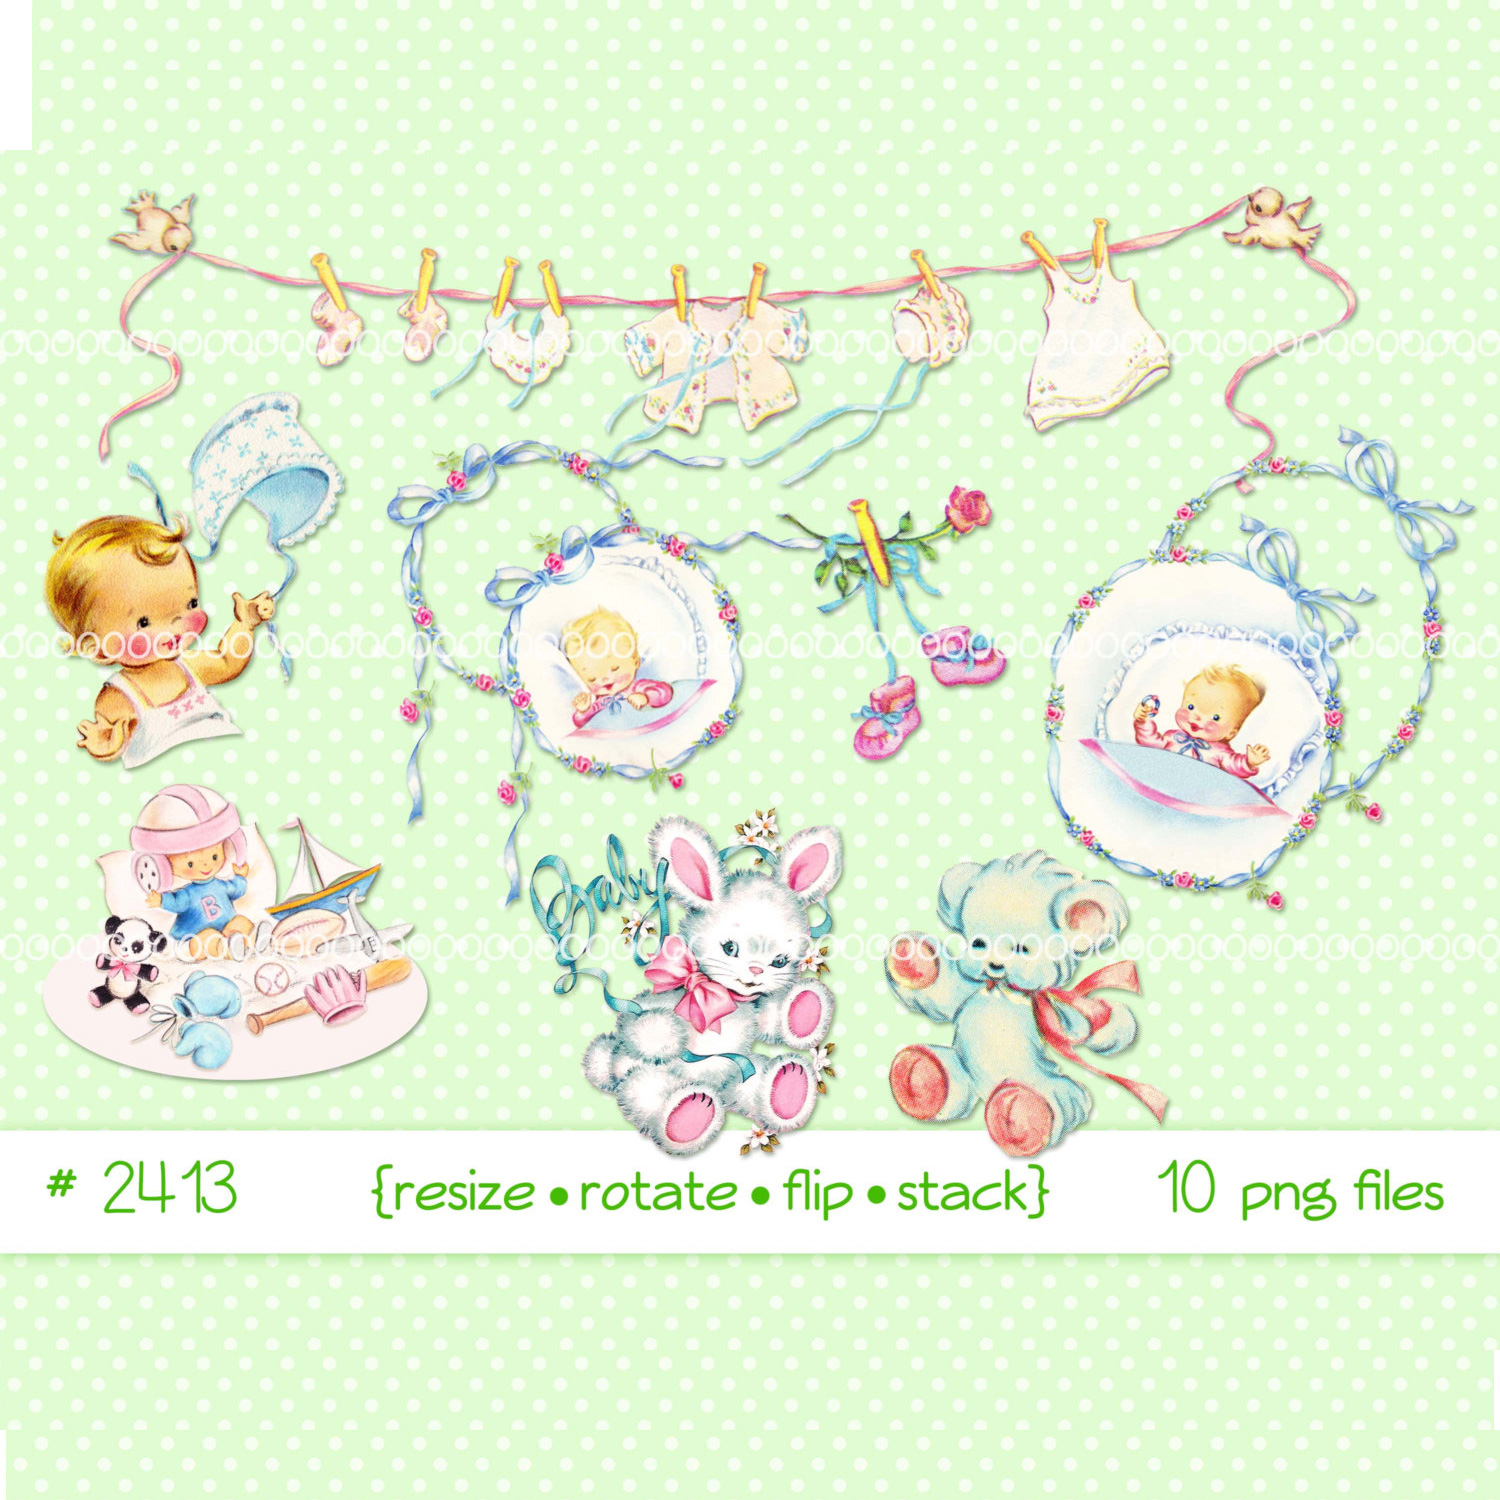 Baby clip art, vintage baby images, baby clothes, bunny, teddy bear, ribbons.